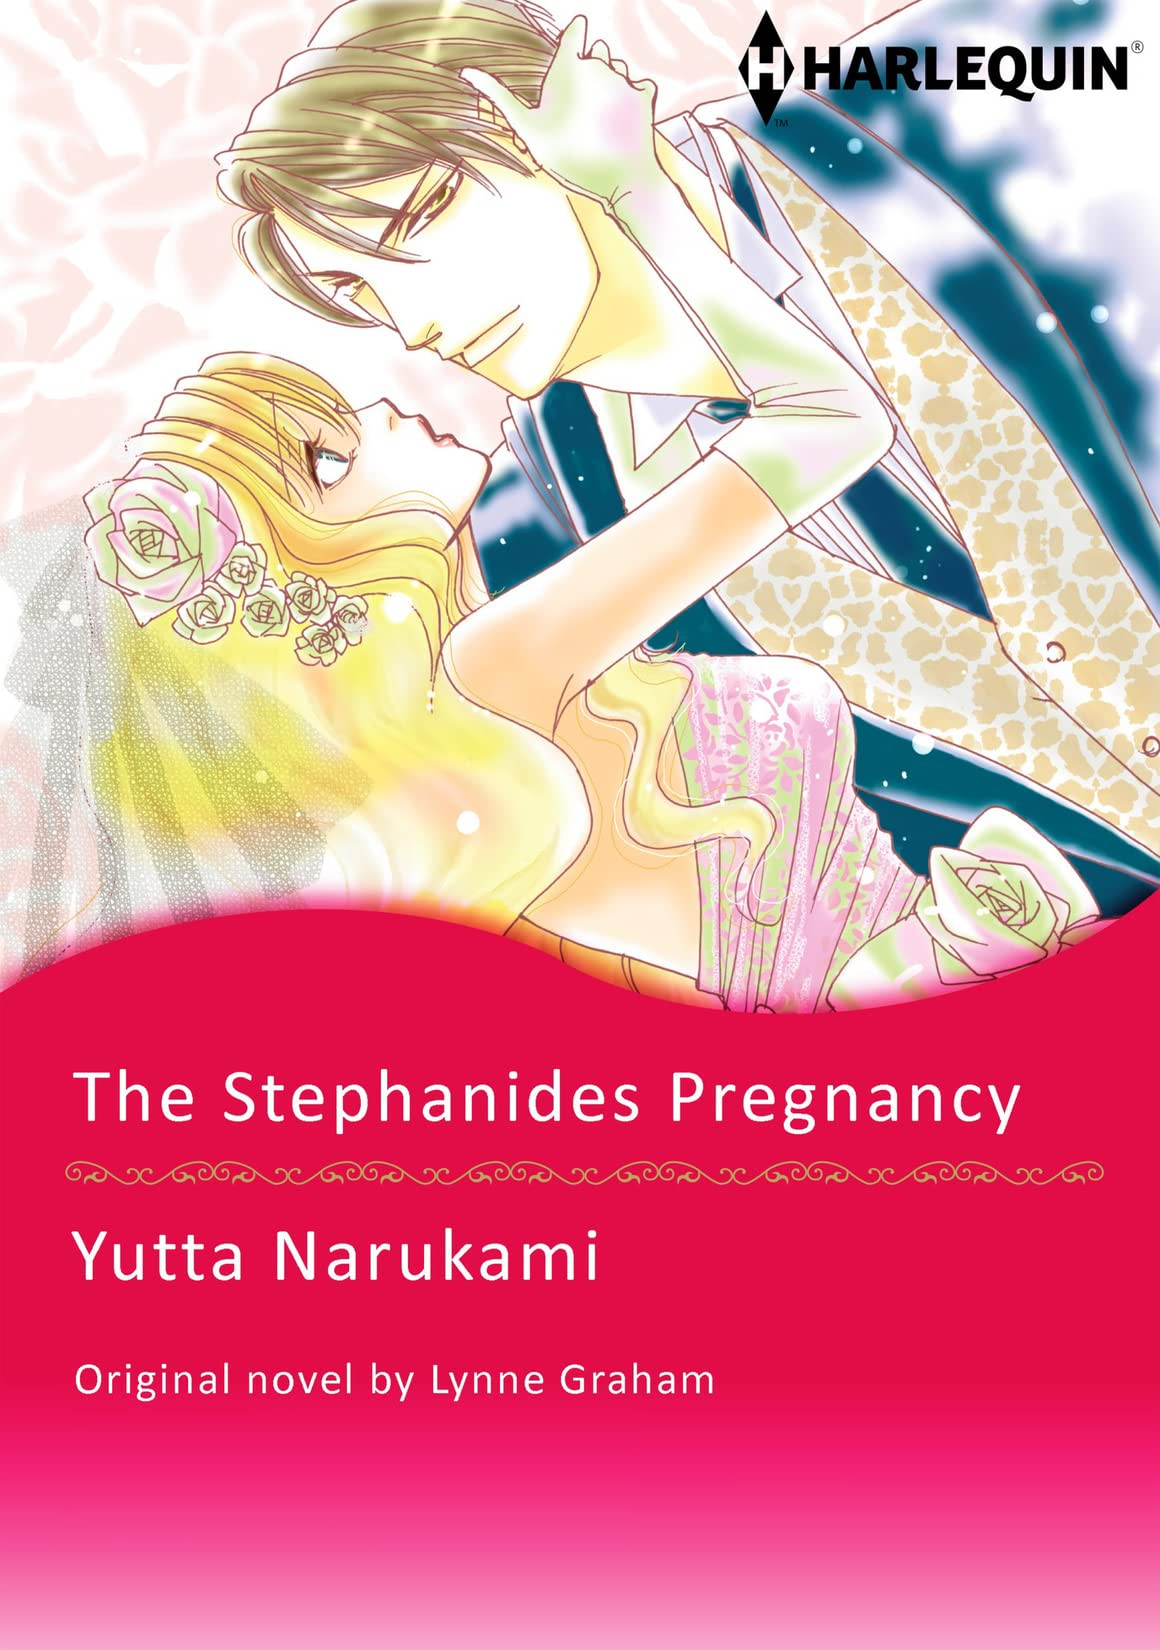 The Stephanides Pregnancy